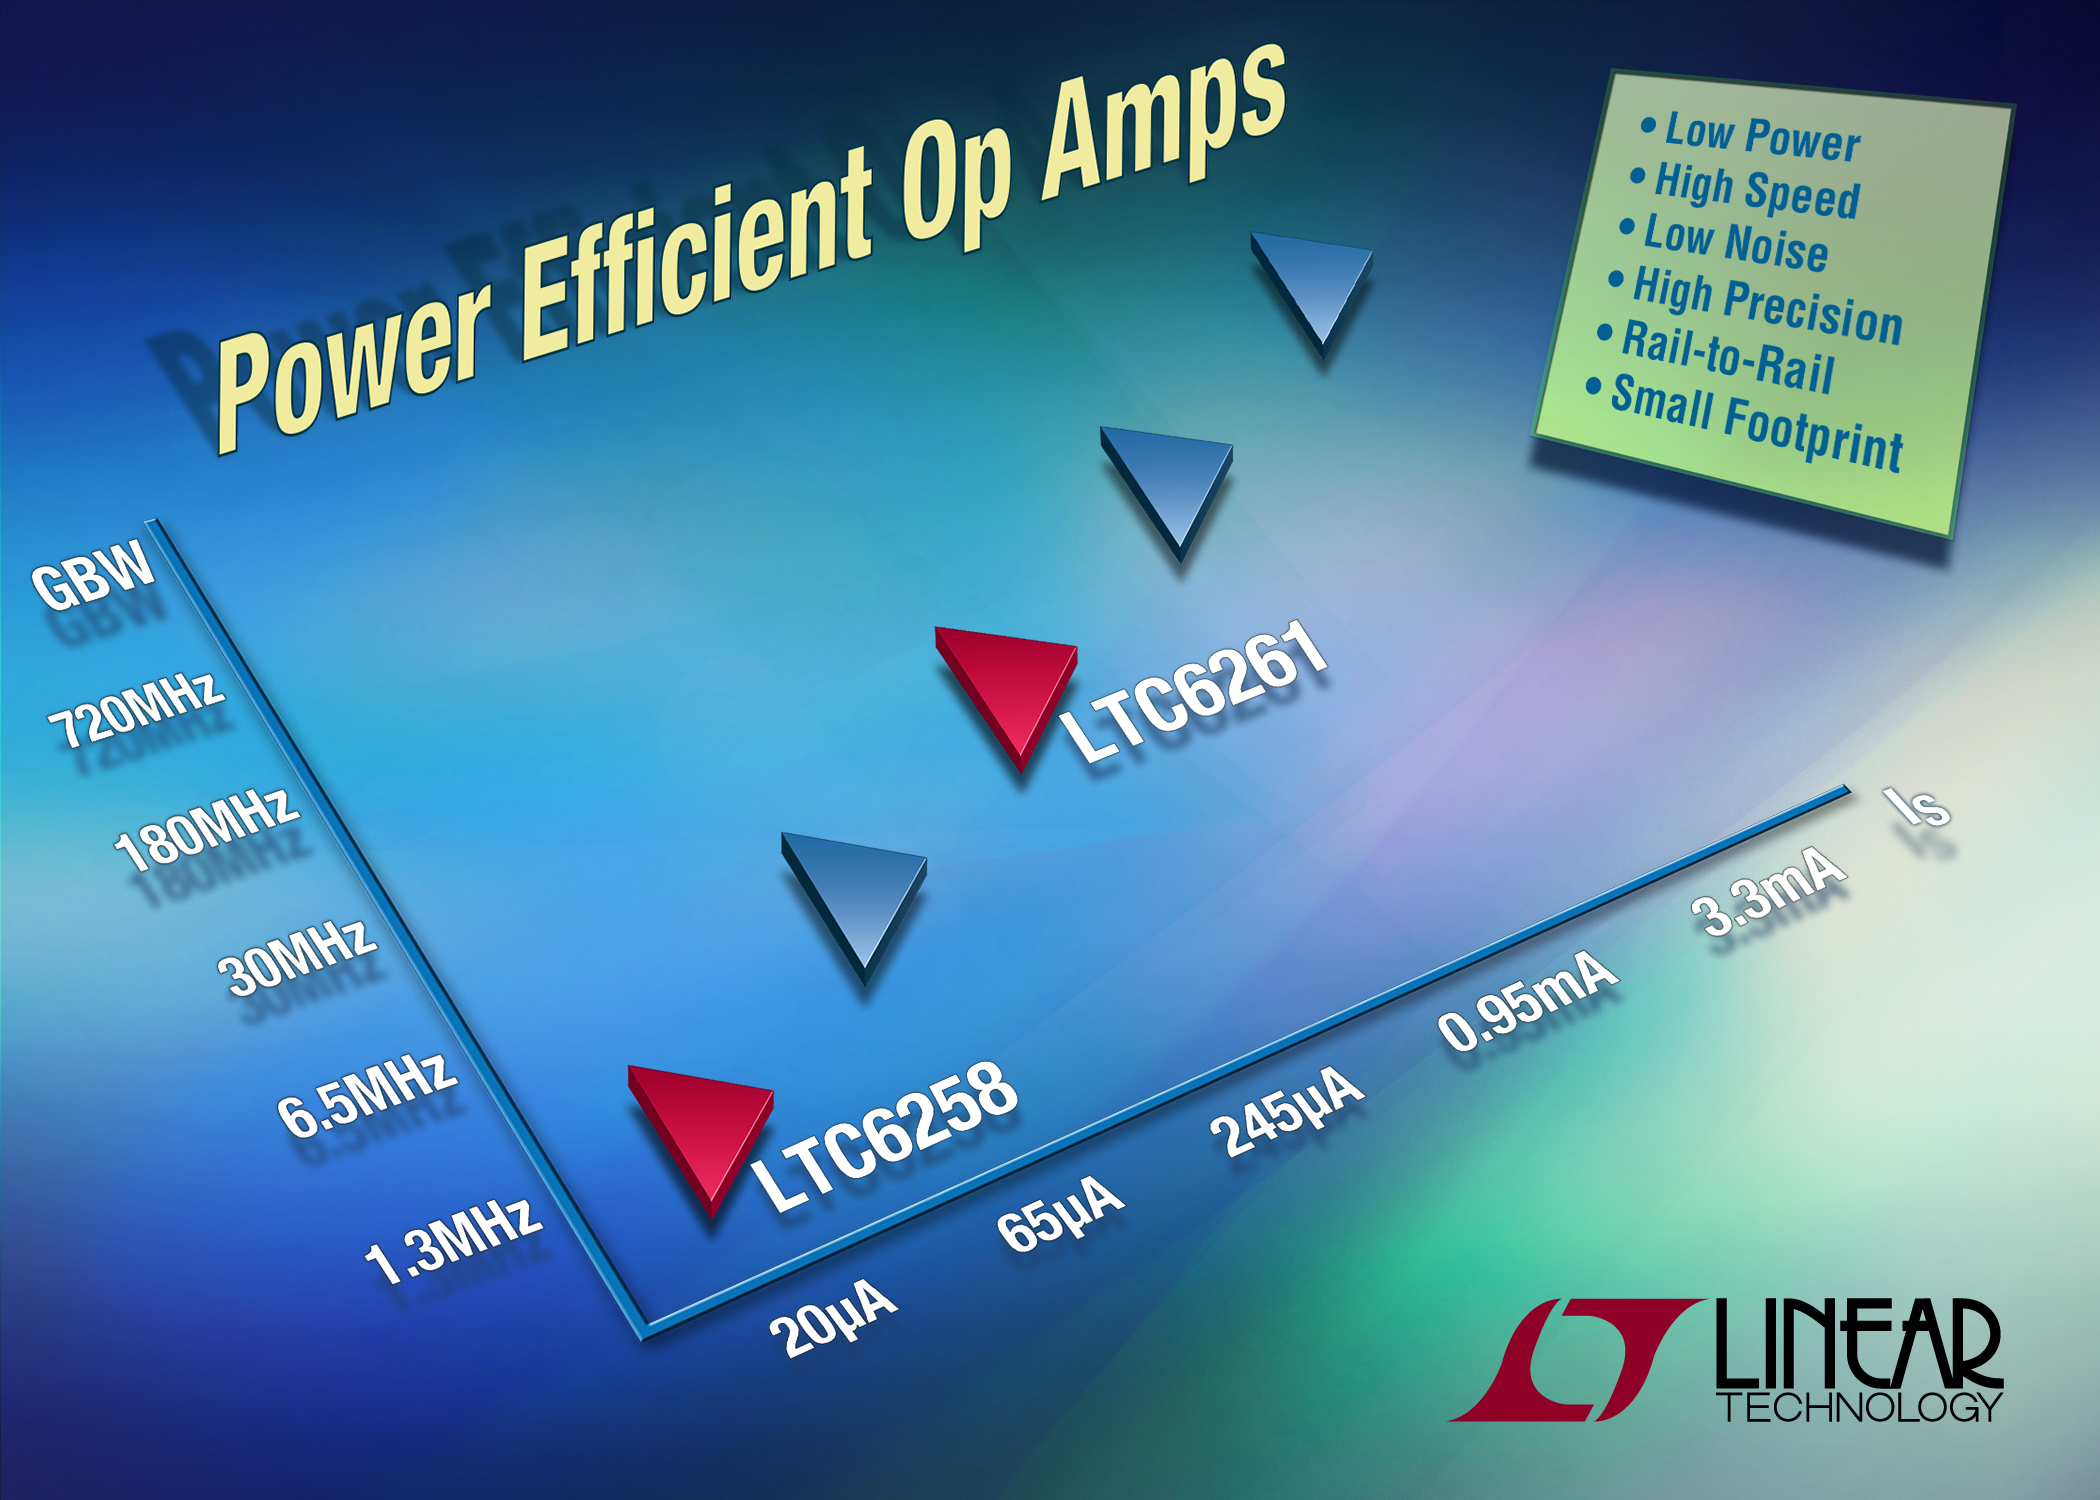 Power-efficient, low-noise, precision operational amplifiers